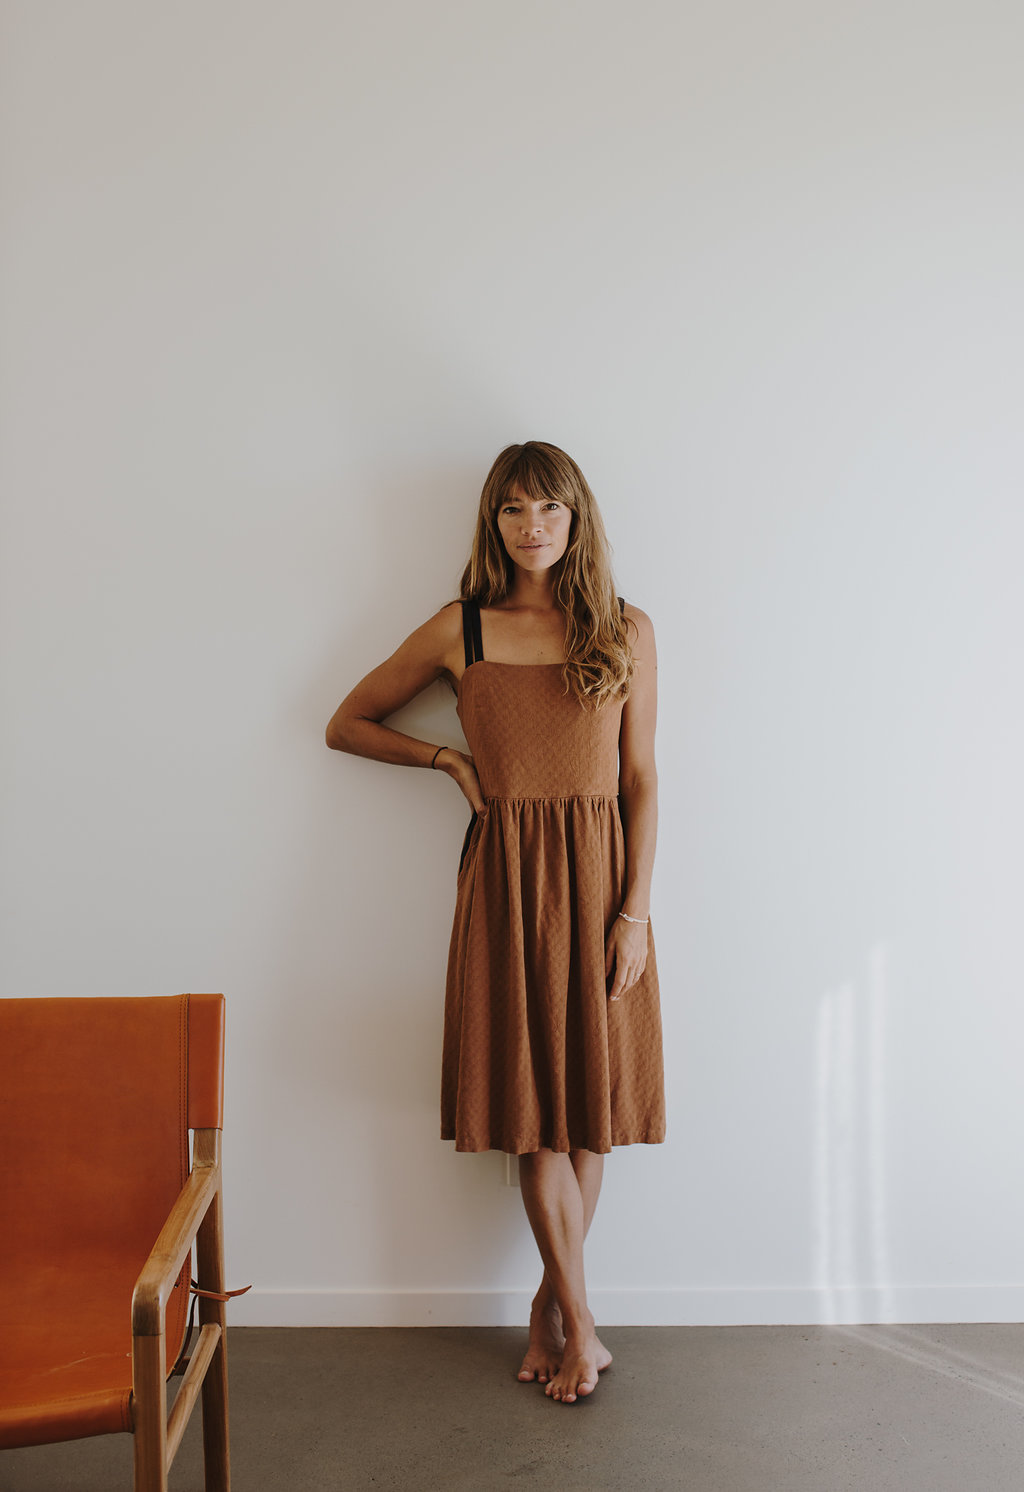 7f1afde687da Now s a good time to shop the Sideline sale and pick up some pretty pieces  for the summer. (I also think that Bea Dress would be cute in winter —  layered ...